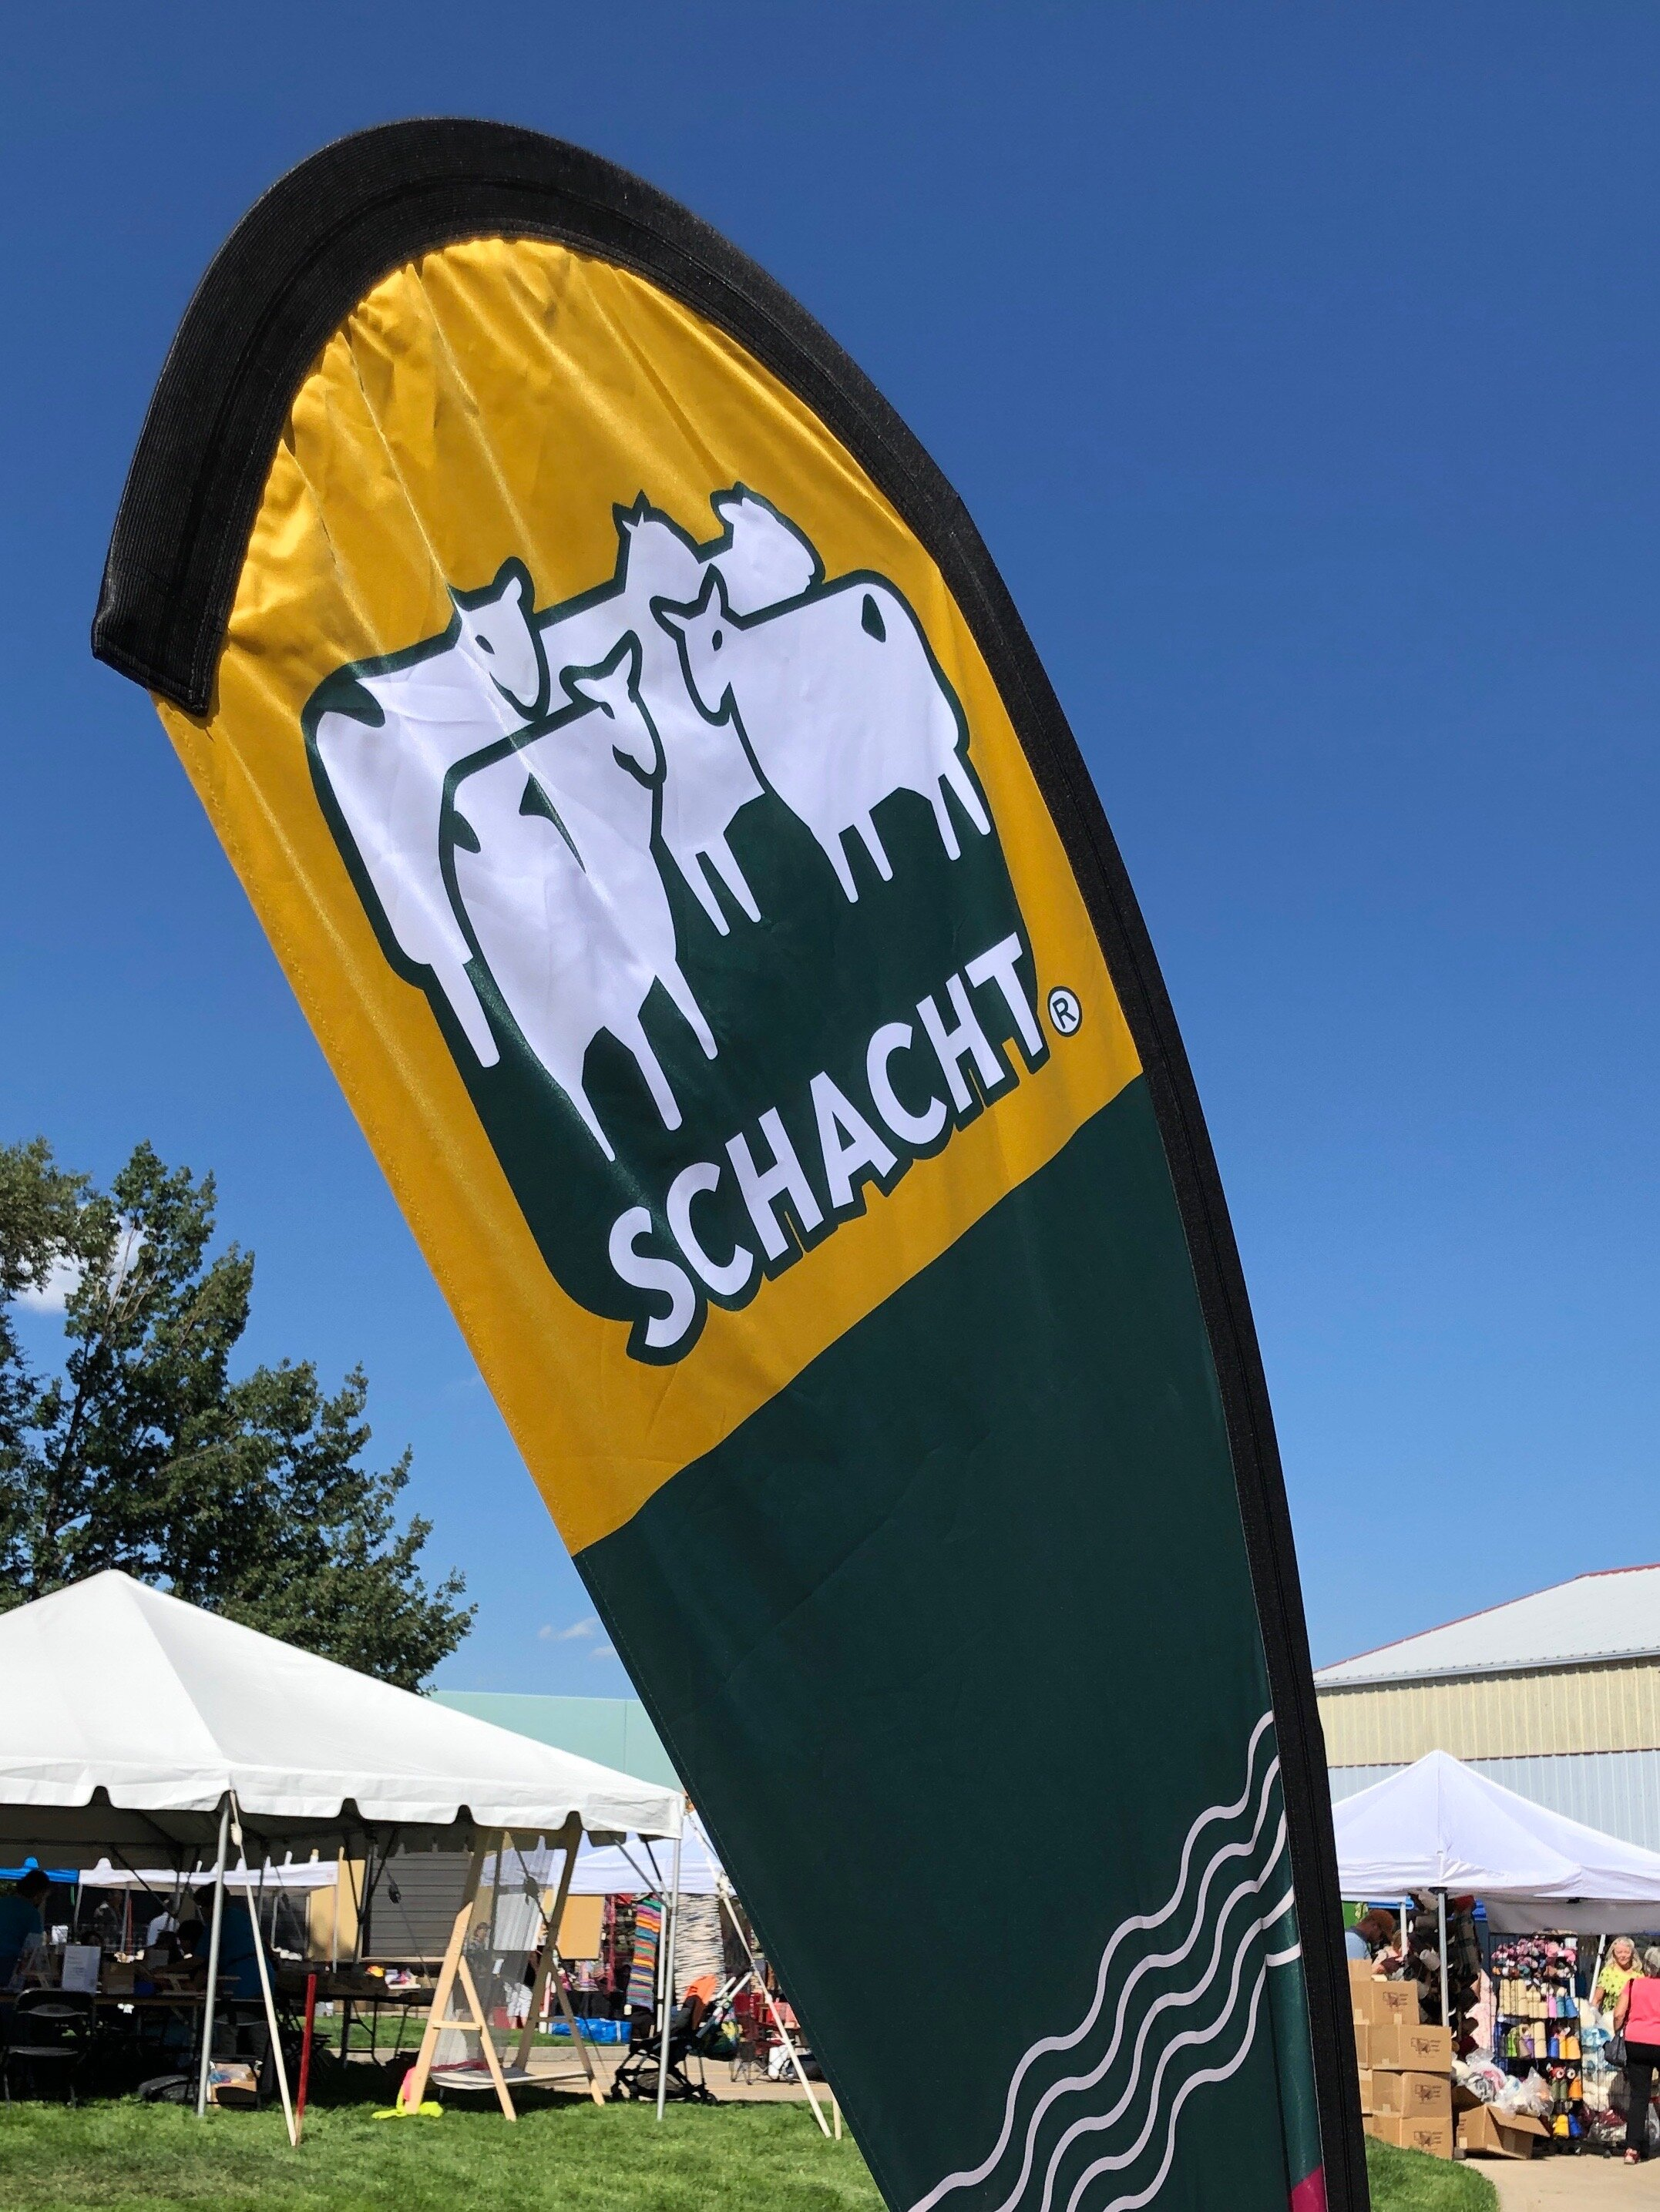 The Schacht banner welcoming visitors to the festivities. Celebrating Schacht's 50th Anniversary || withwool.com  #schacht50years